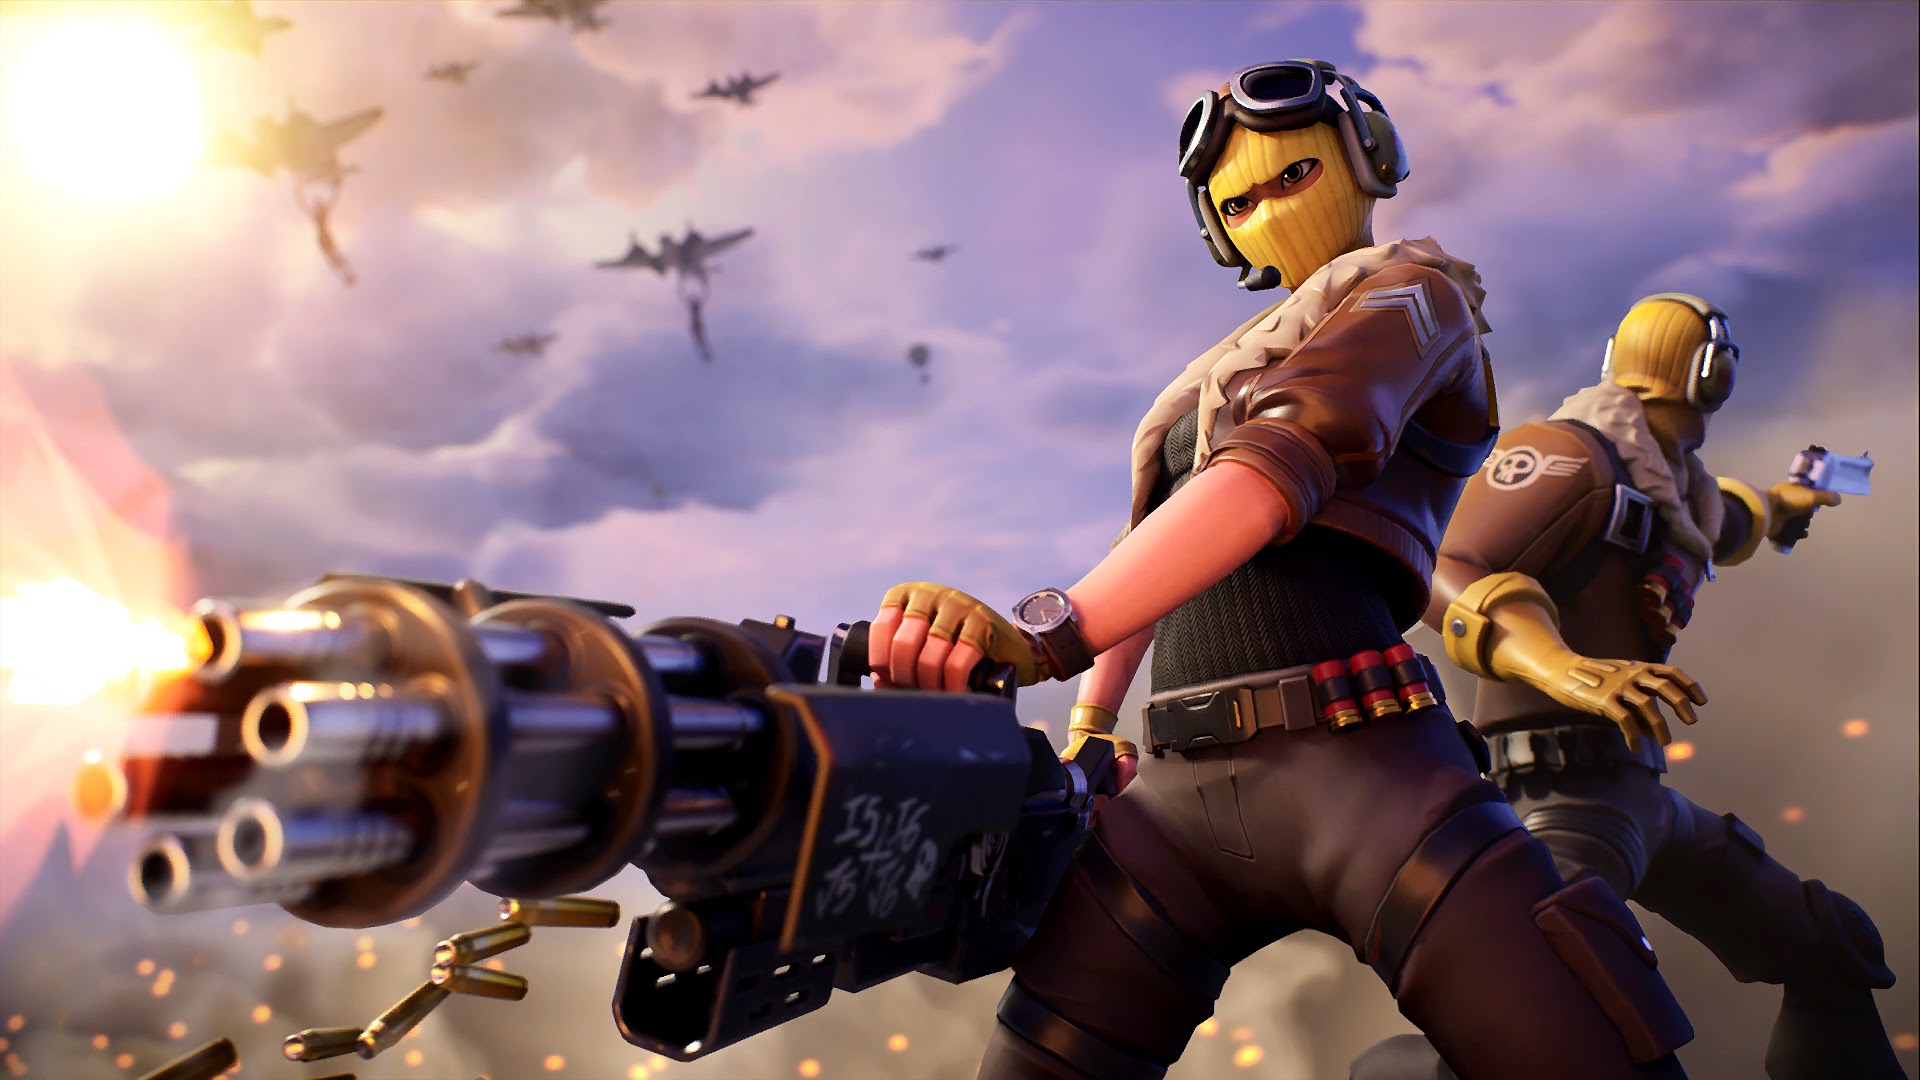 Velocity And Raptor Fortnite Skins How To Get Them Wallpapers